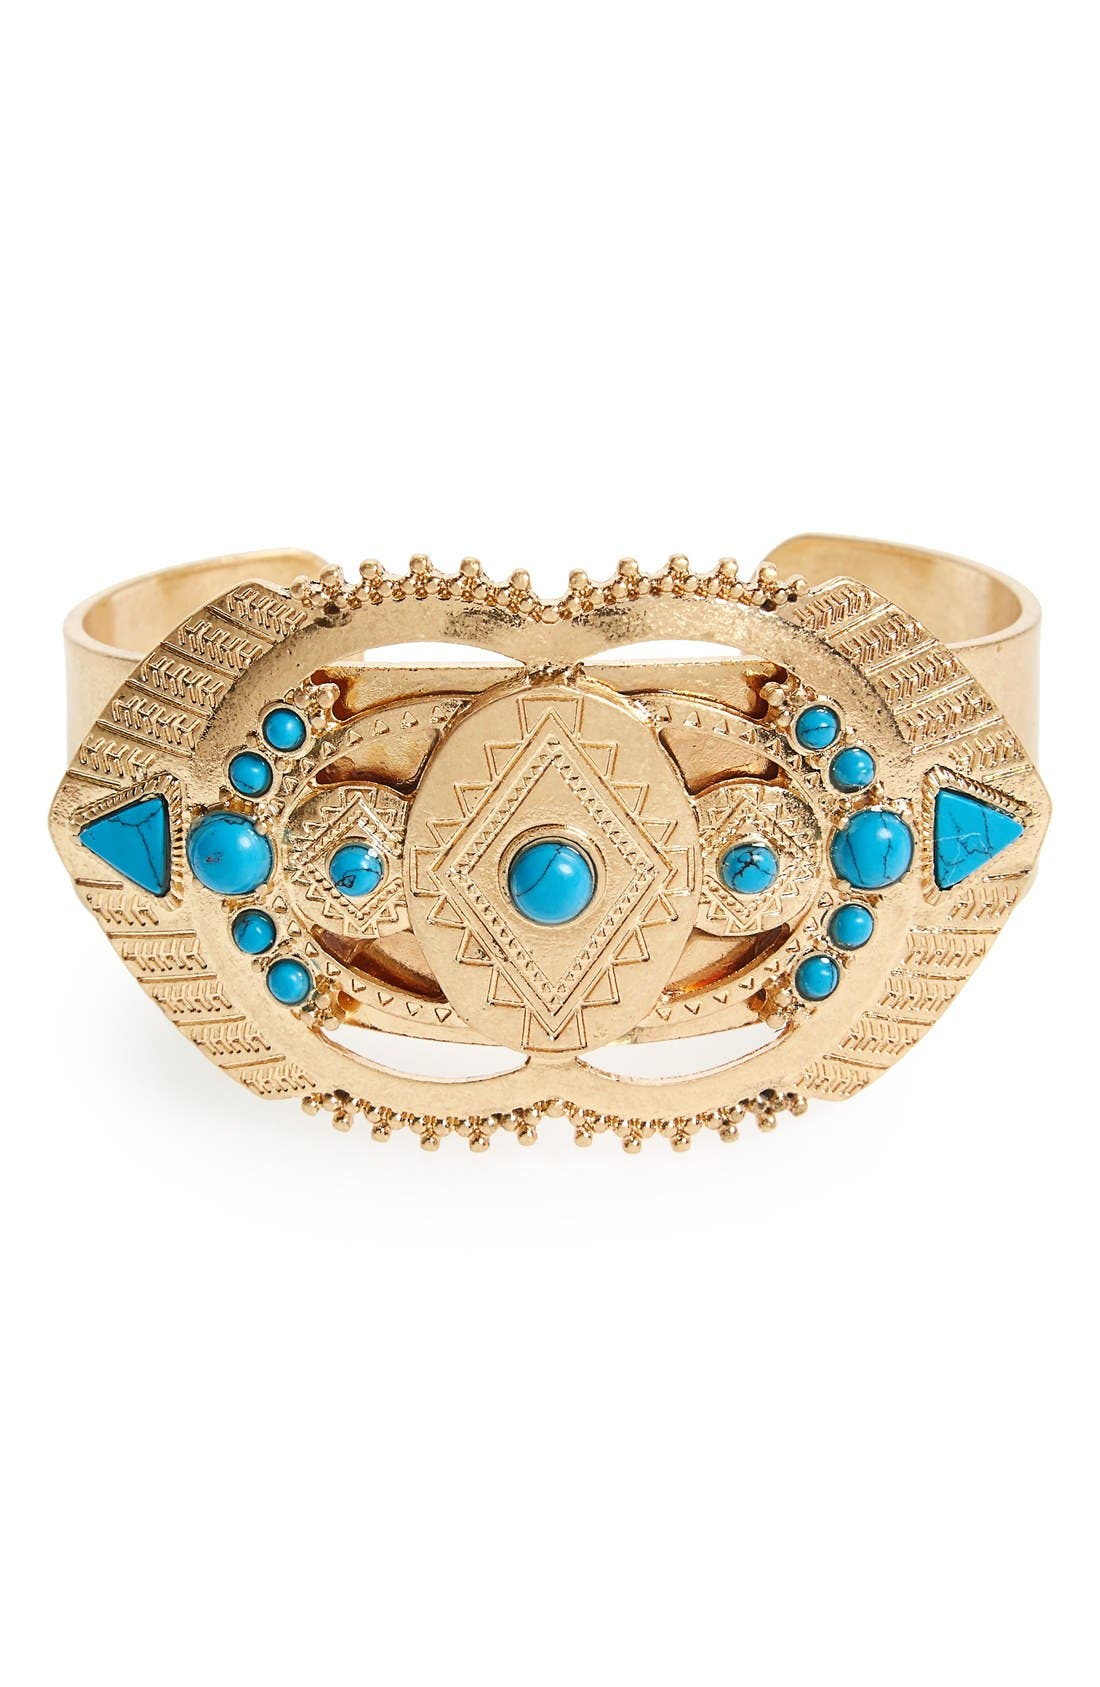 Alternate Image 1 Selected - Danielle Nicole 'Dream' Reconstituted Turquoise Cuff